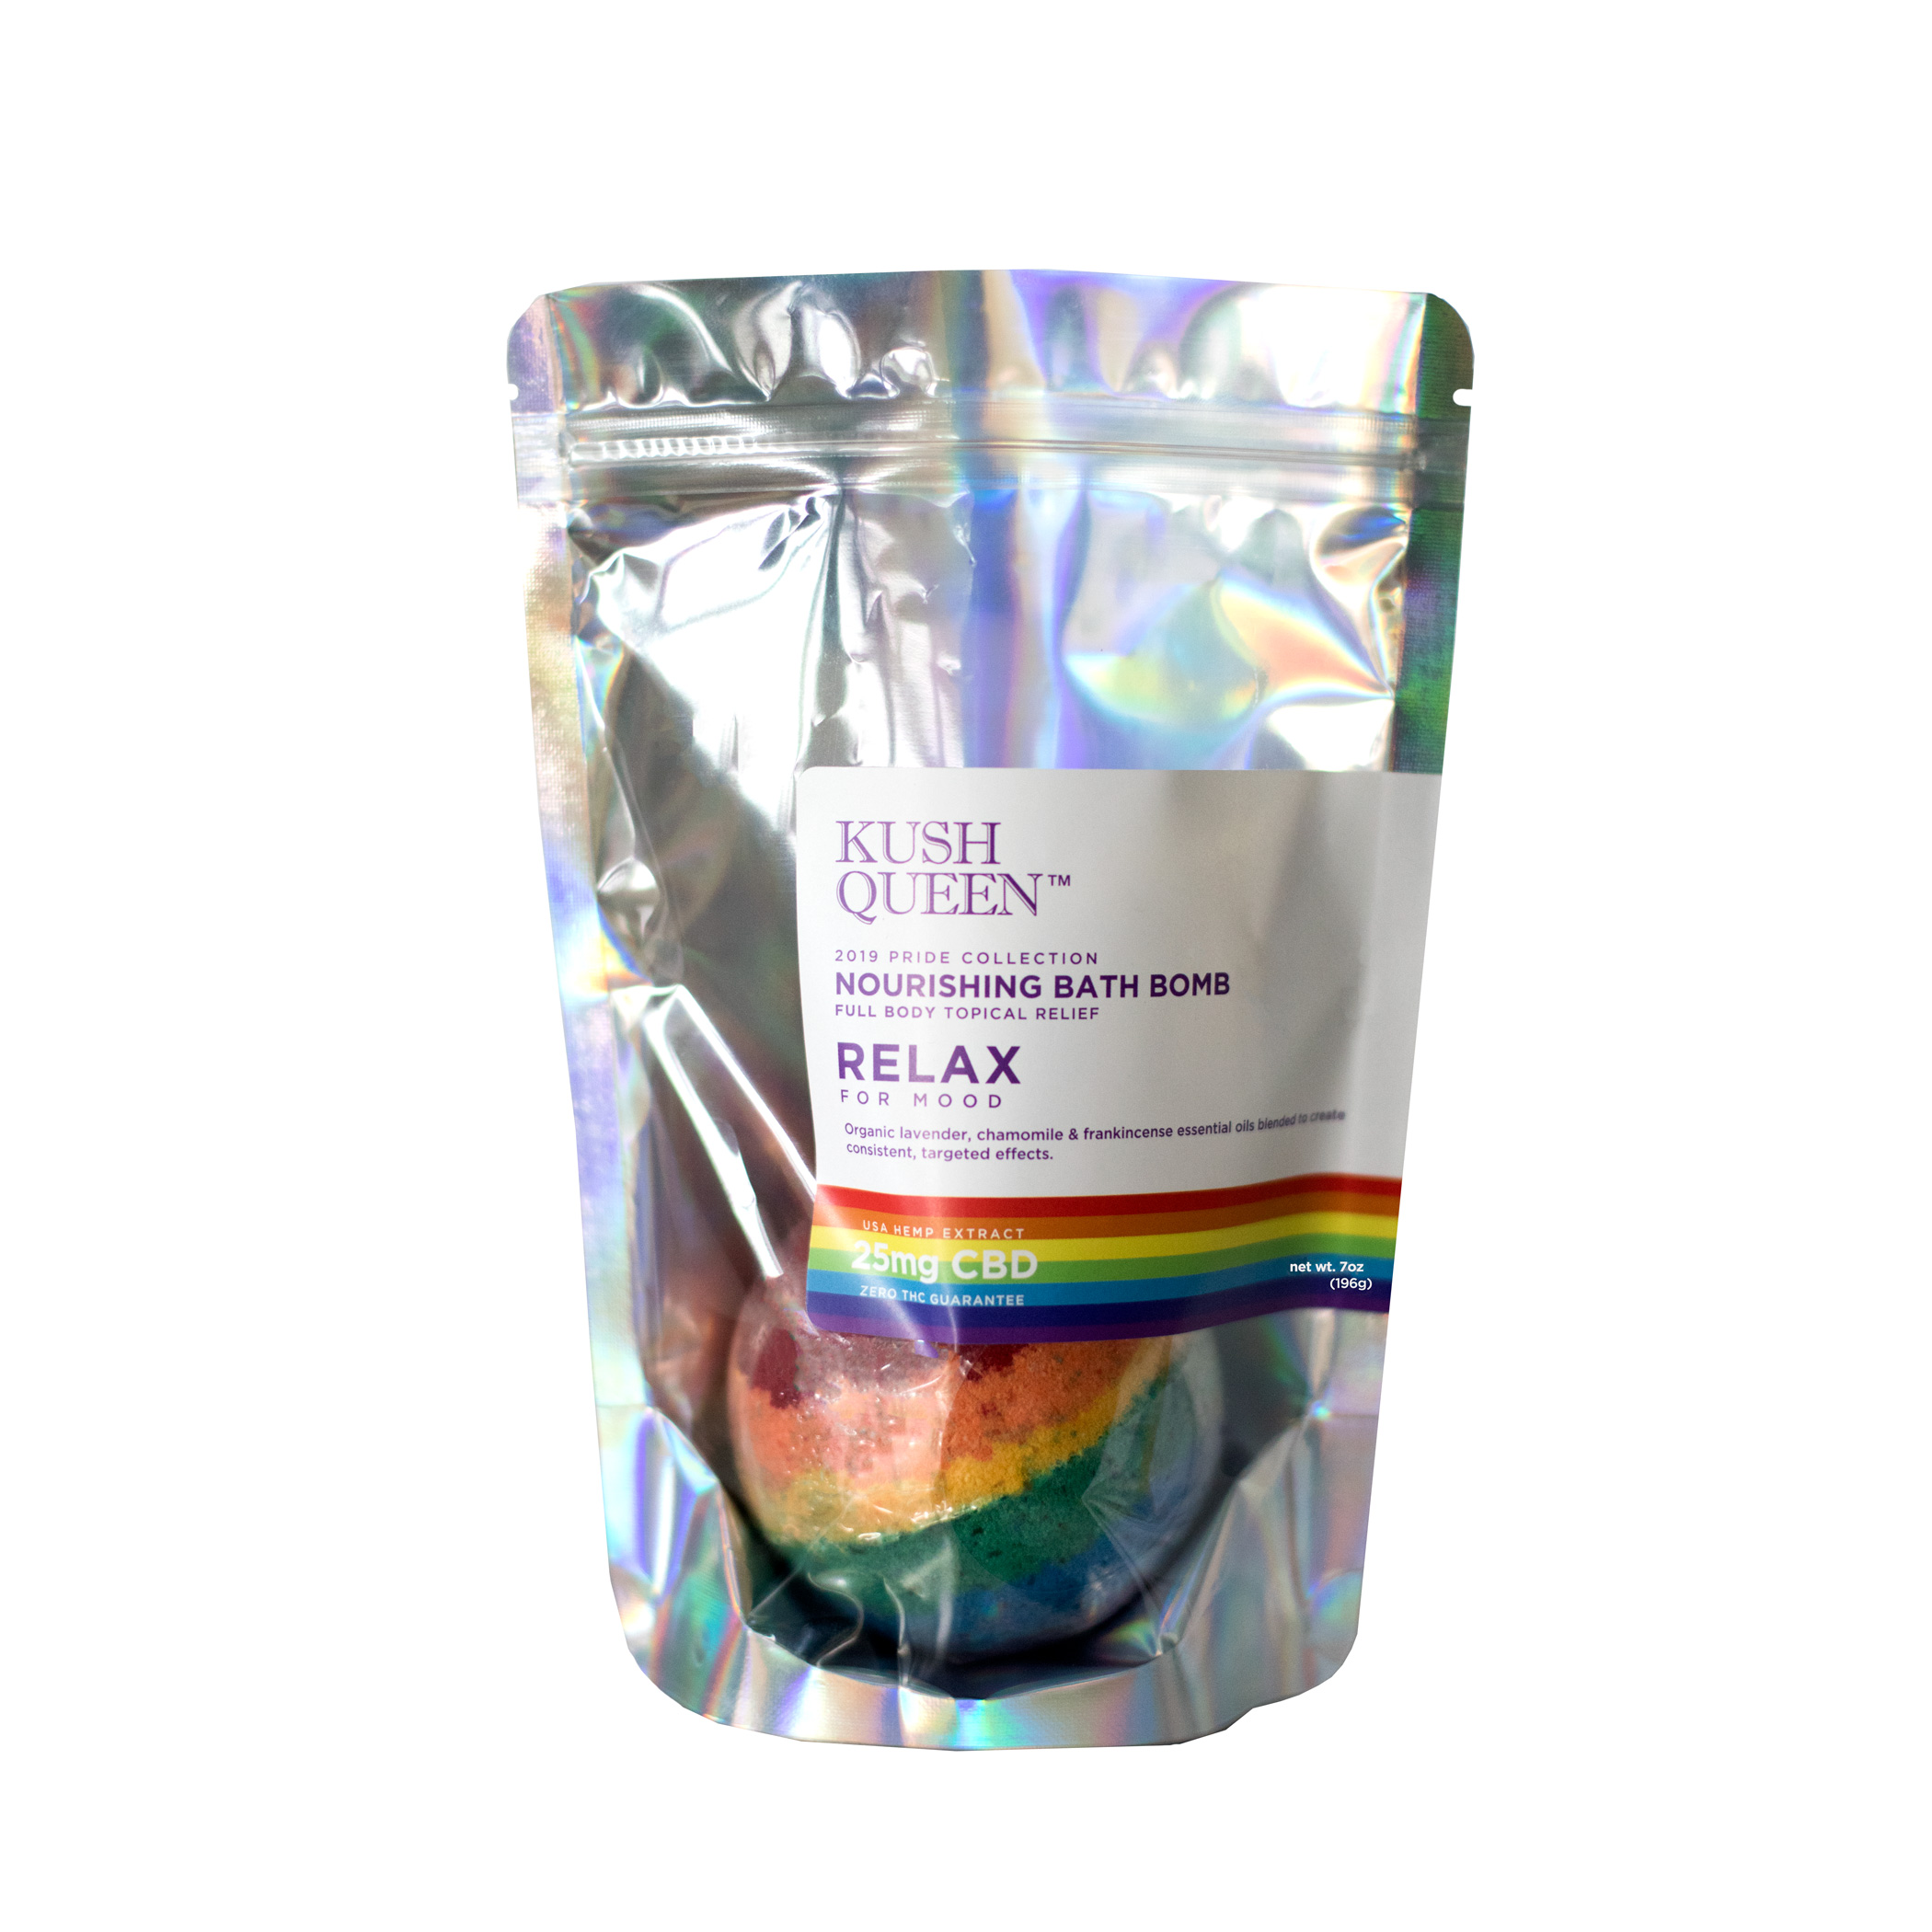 Kush Queen - Female founded company Kush Queen brings hemp lifestyle products to the masses. CBD has been found to ease inflammation as well as anxiety, without any of the psychoactive symptoms associated with the idea of weed.The 2019 Pride collection includes three products (a tincture, a bath bomb, and a lubricant). You can buy them all separately or buy the full set for $100 (almost a quarter less than buying the pieces individually). 20% of all pride collection sales go to Trans Lifeline to provide resources and assistance to transgender individuals.